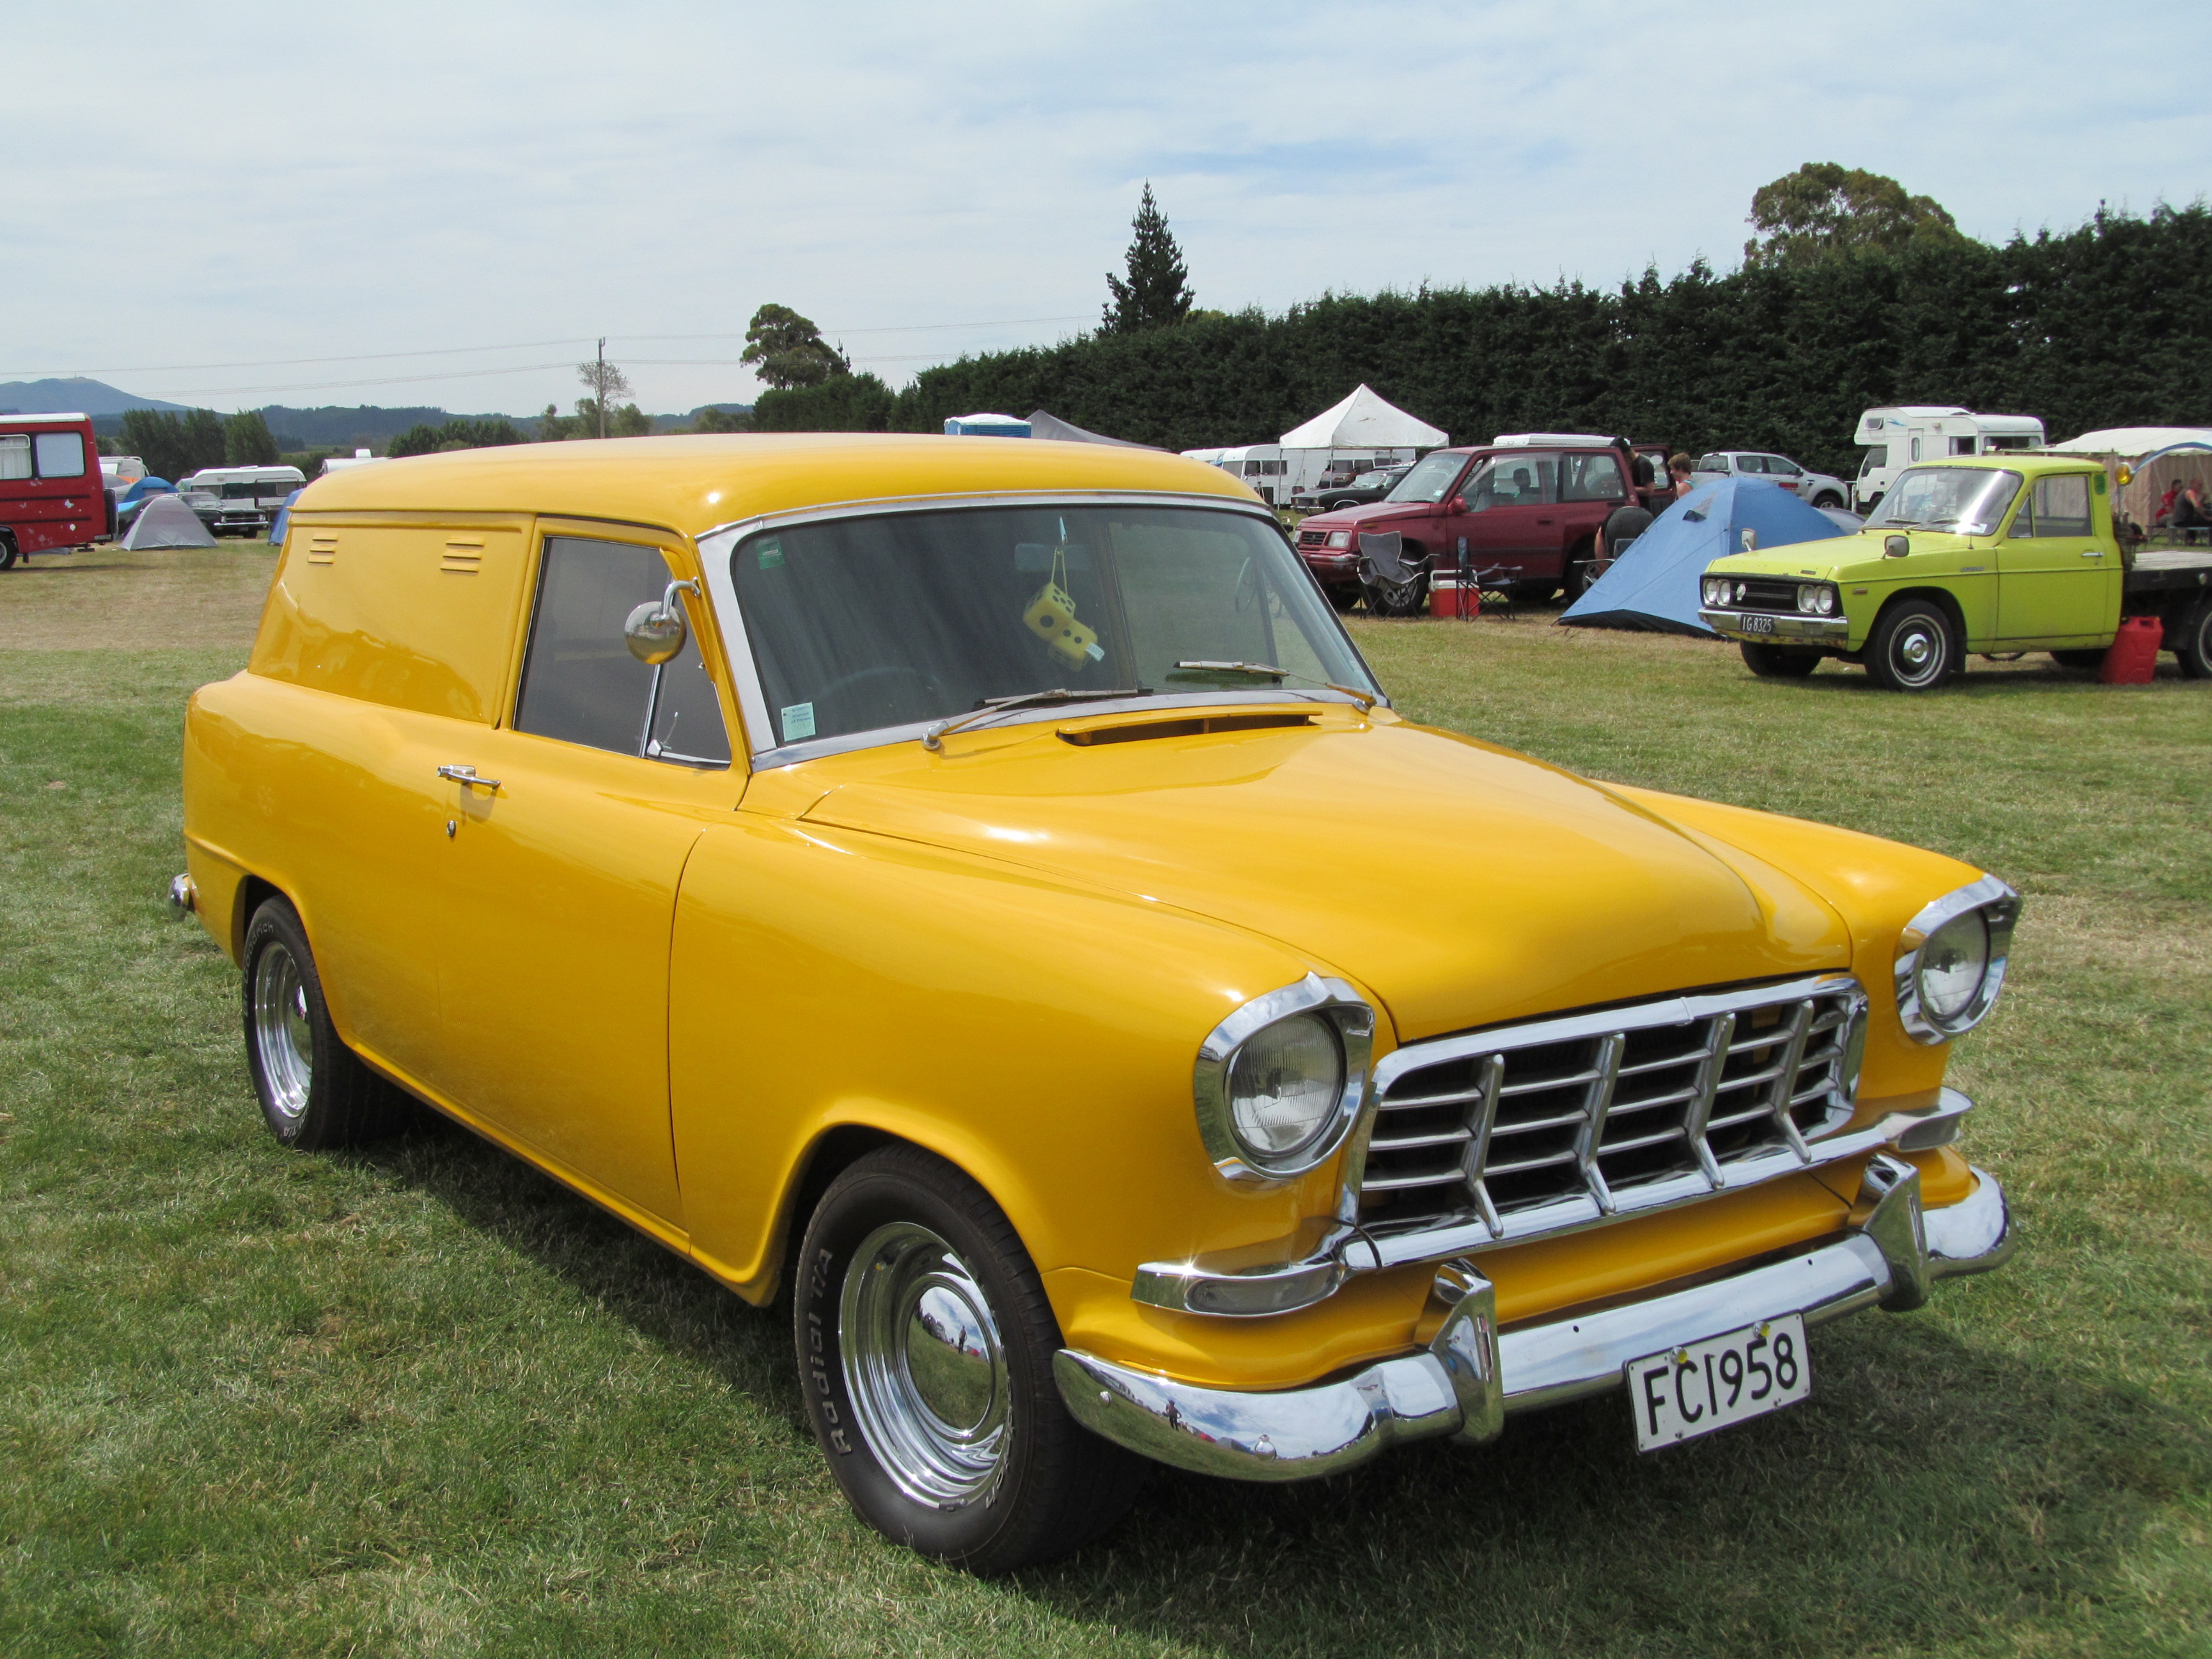 https://commons.wikimedia.org/wiki/File:1958_Holden_Panel_Van_(FC)_(14732635926).jpg